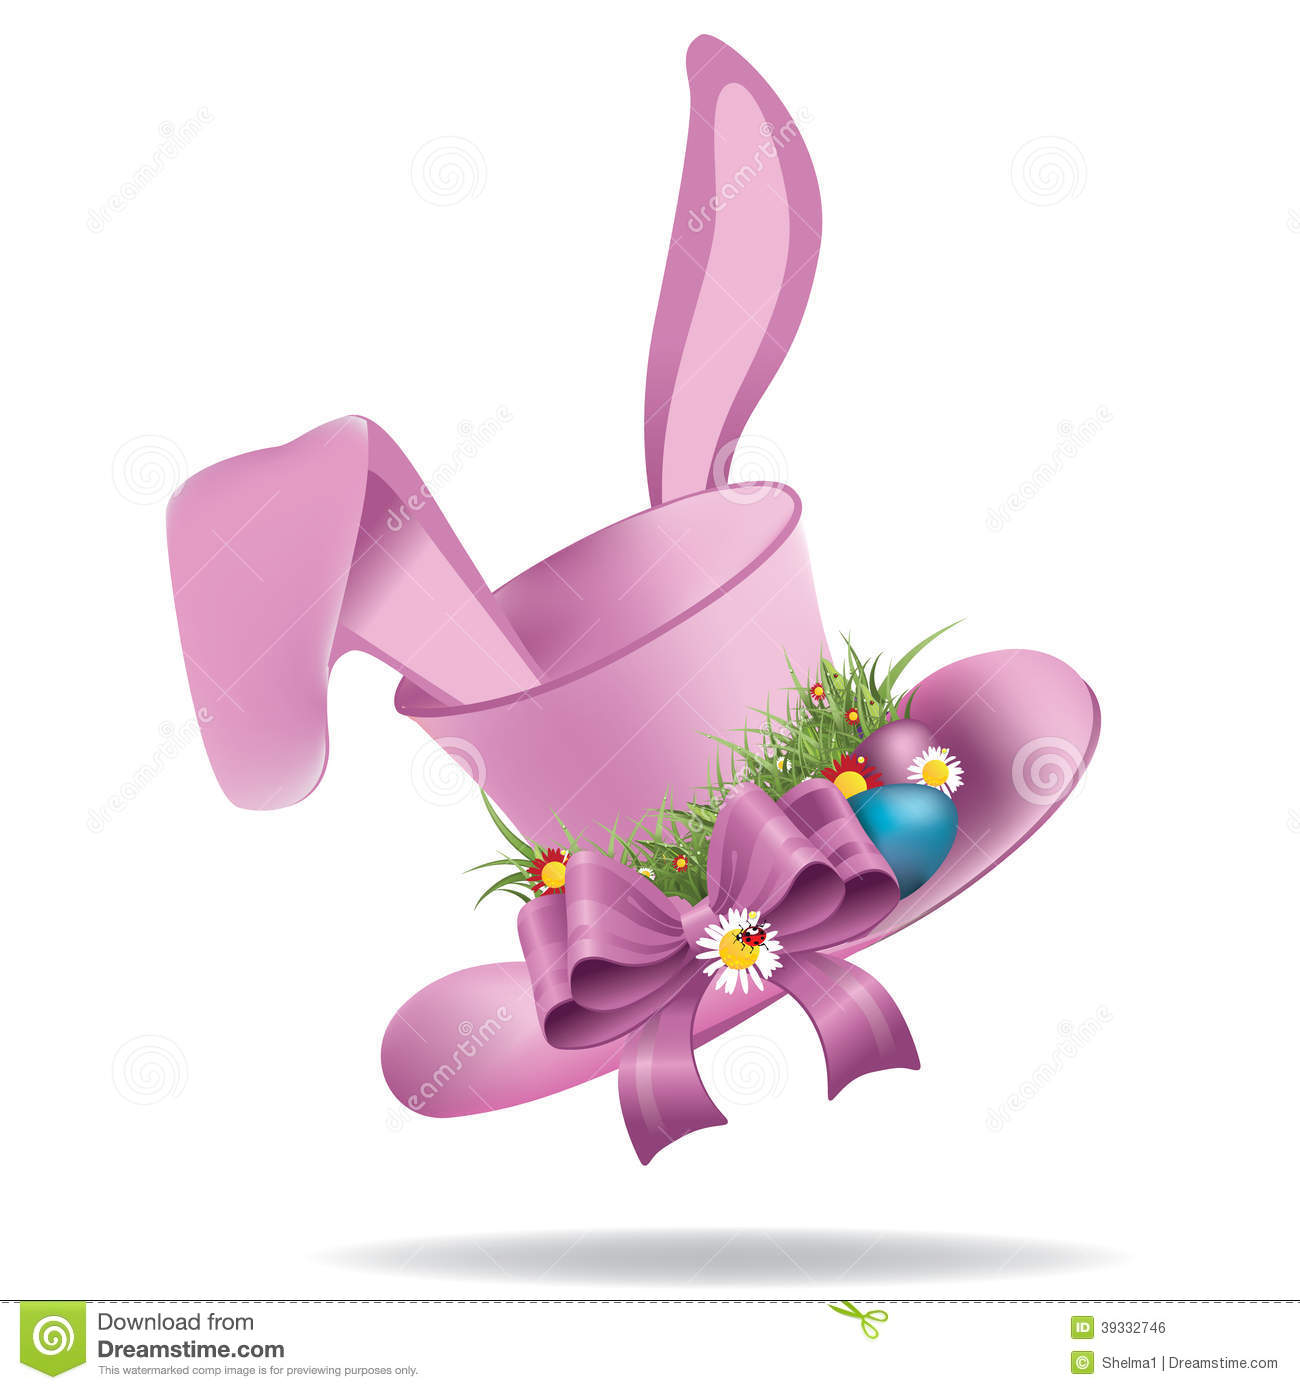 Easter Bonnet Hats Clip Art